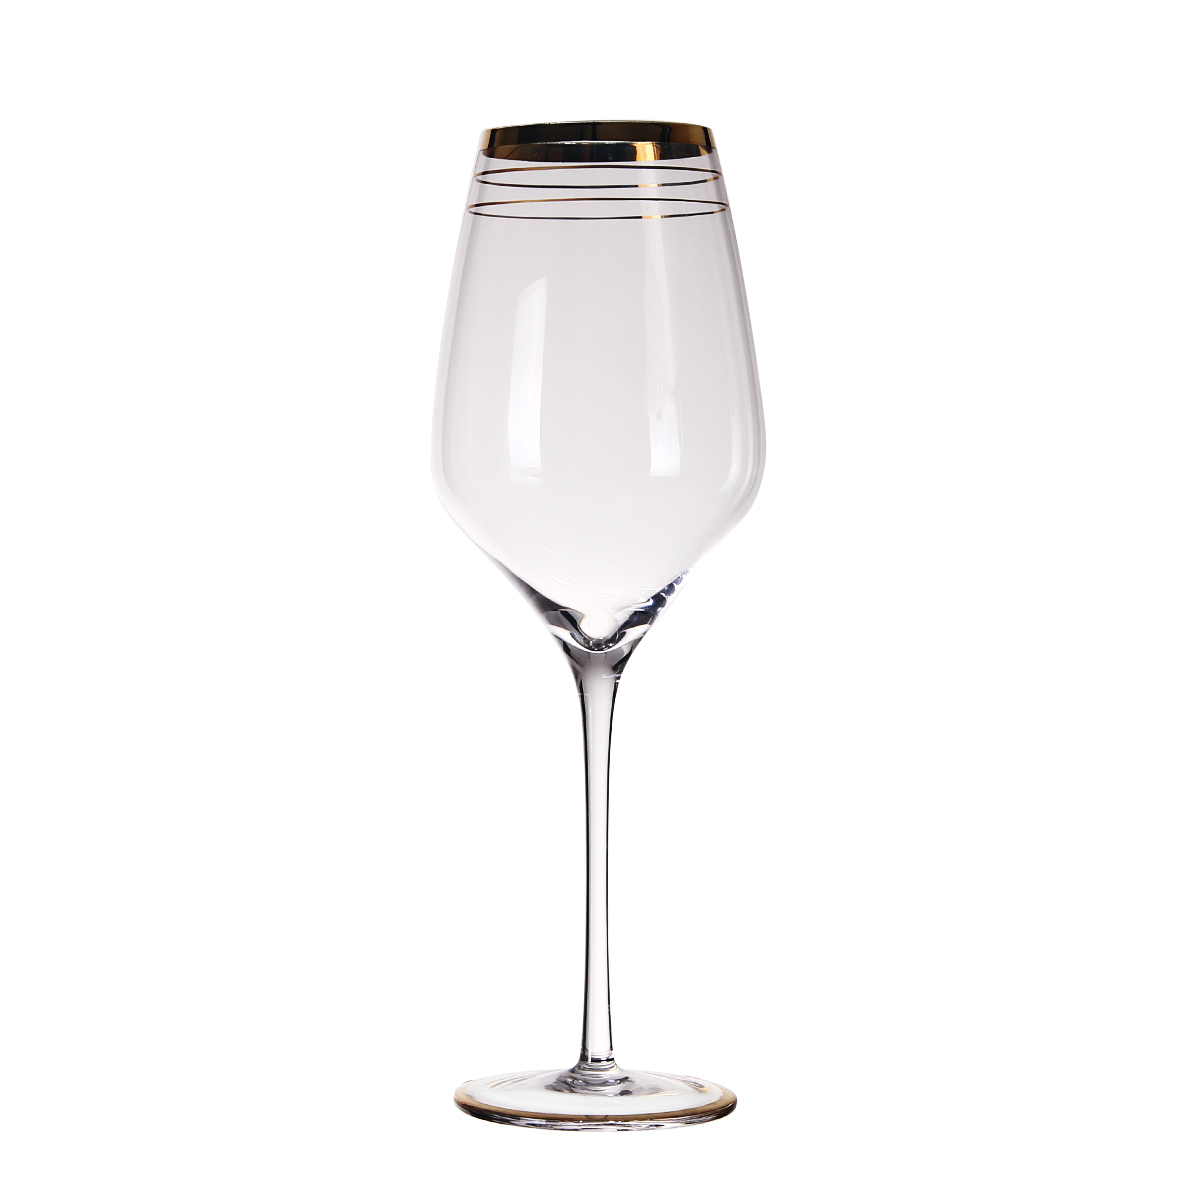 SET13034 SANZO mouthblown oem decoration gold rim wine glass with long stem